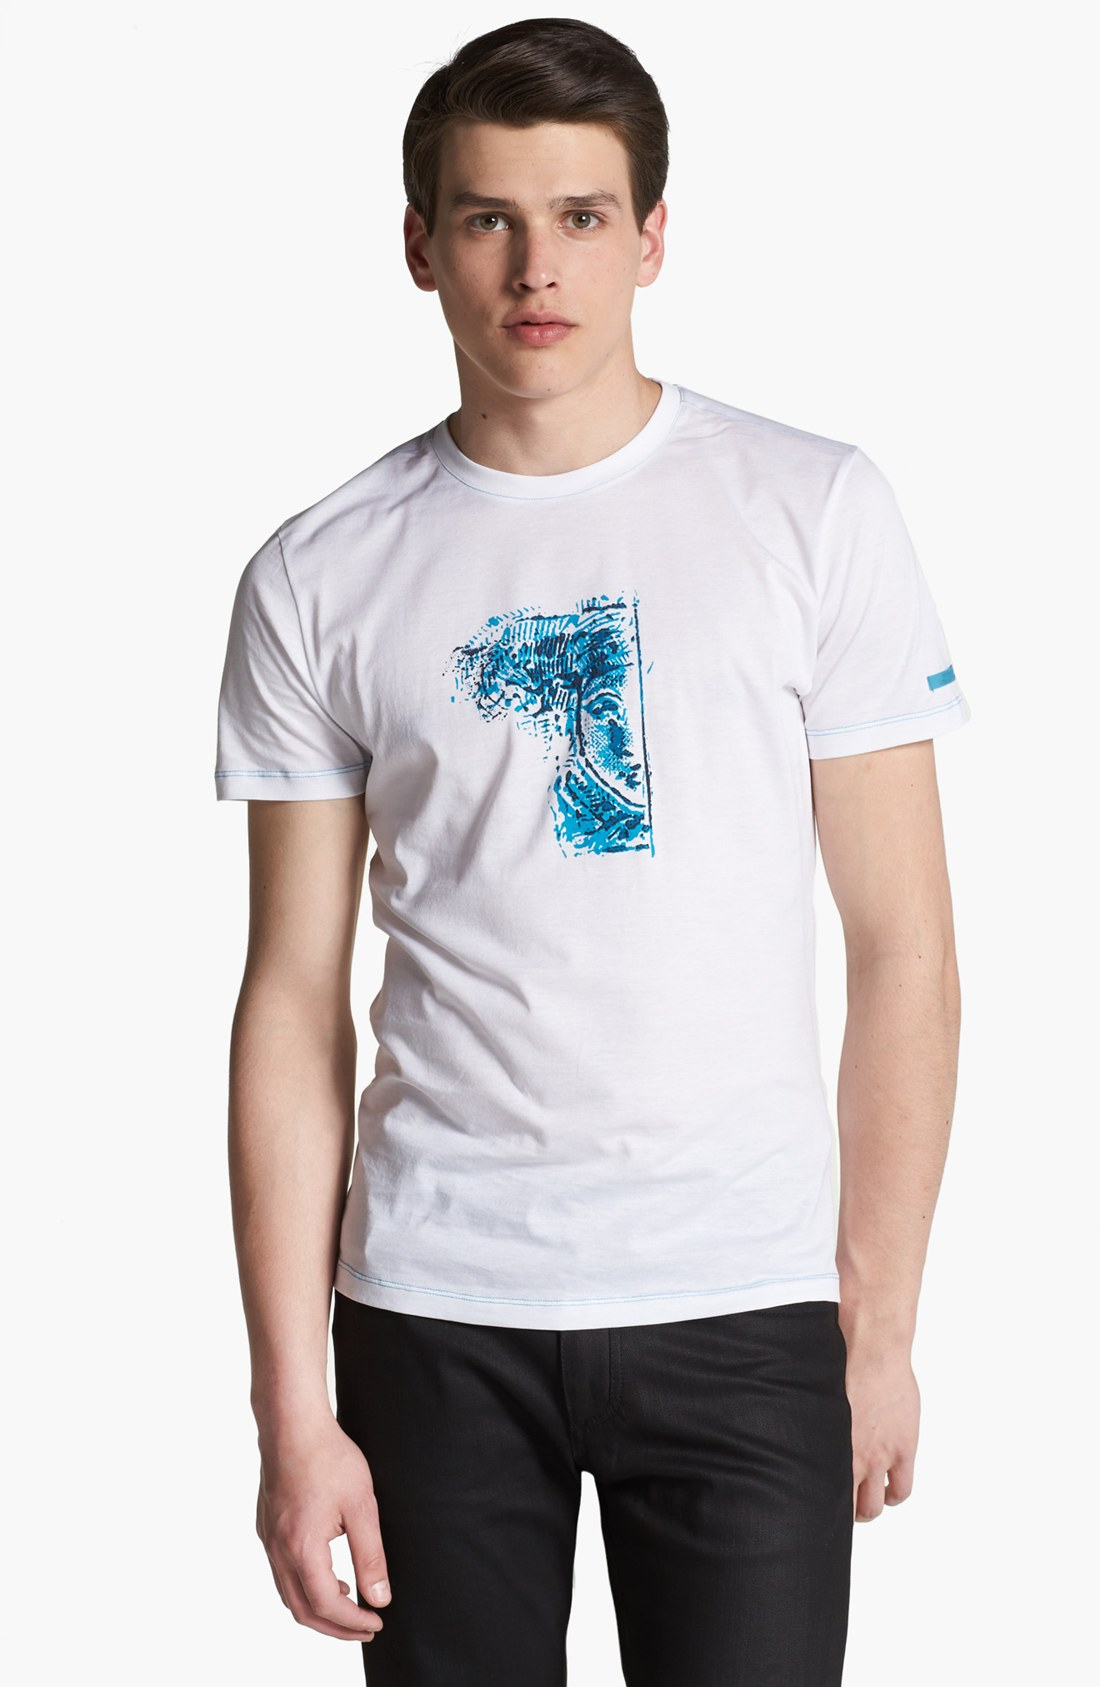 Versace half medusa tshirt in white for men white blue for Blue and white versace shirt